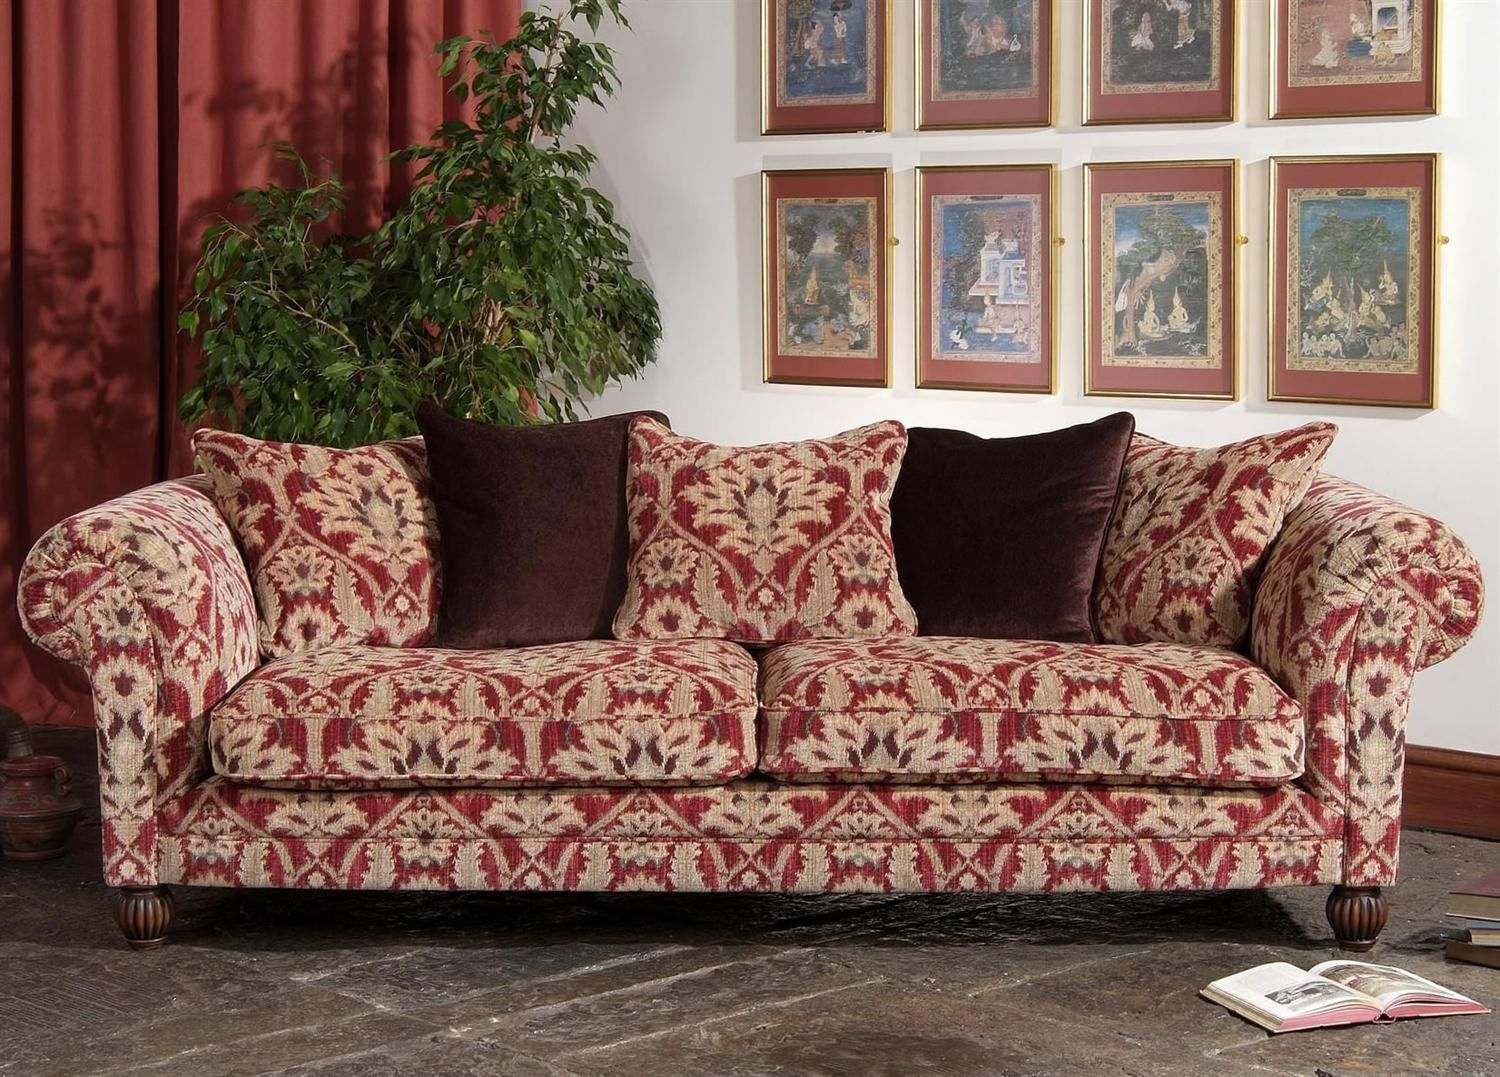 Sofology Richmonde Tetrad Elgar Sofa Collection From George Tannahill Sons Comfy